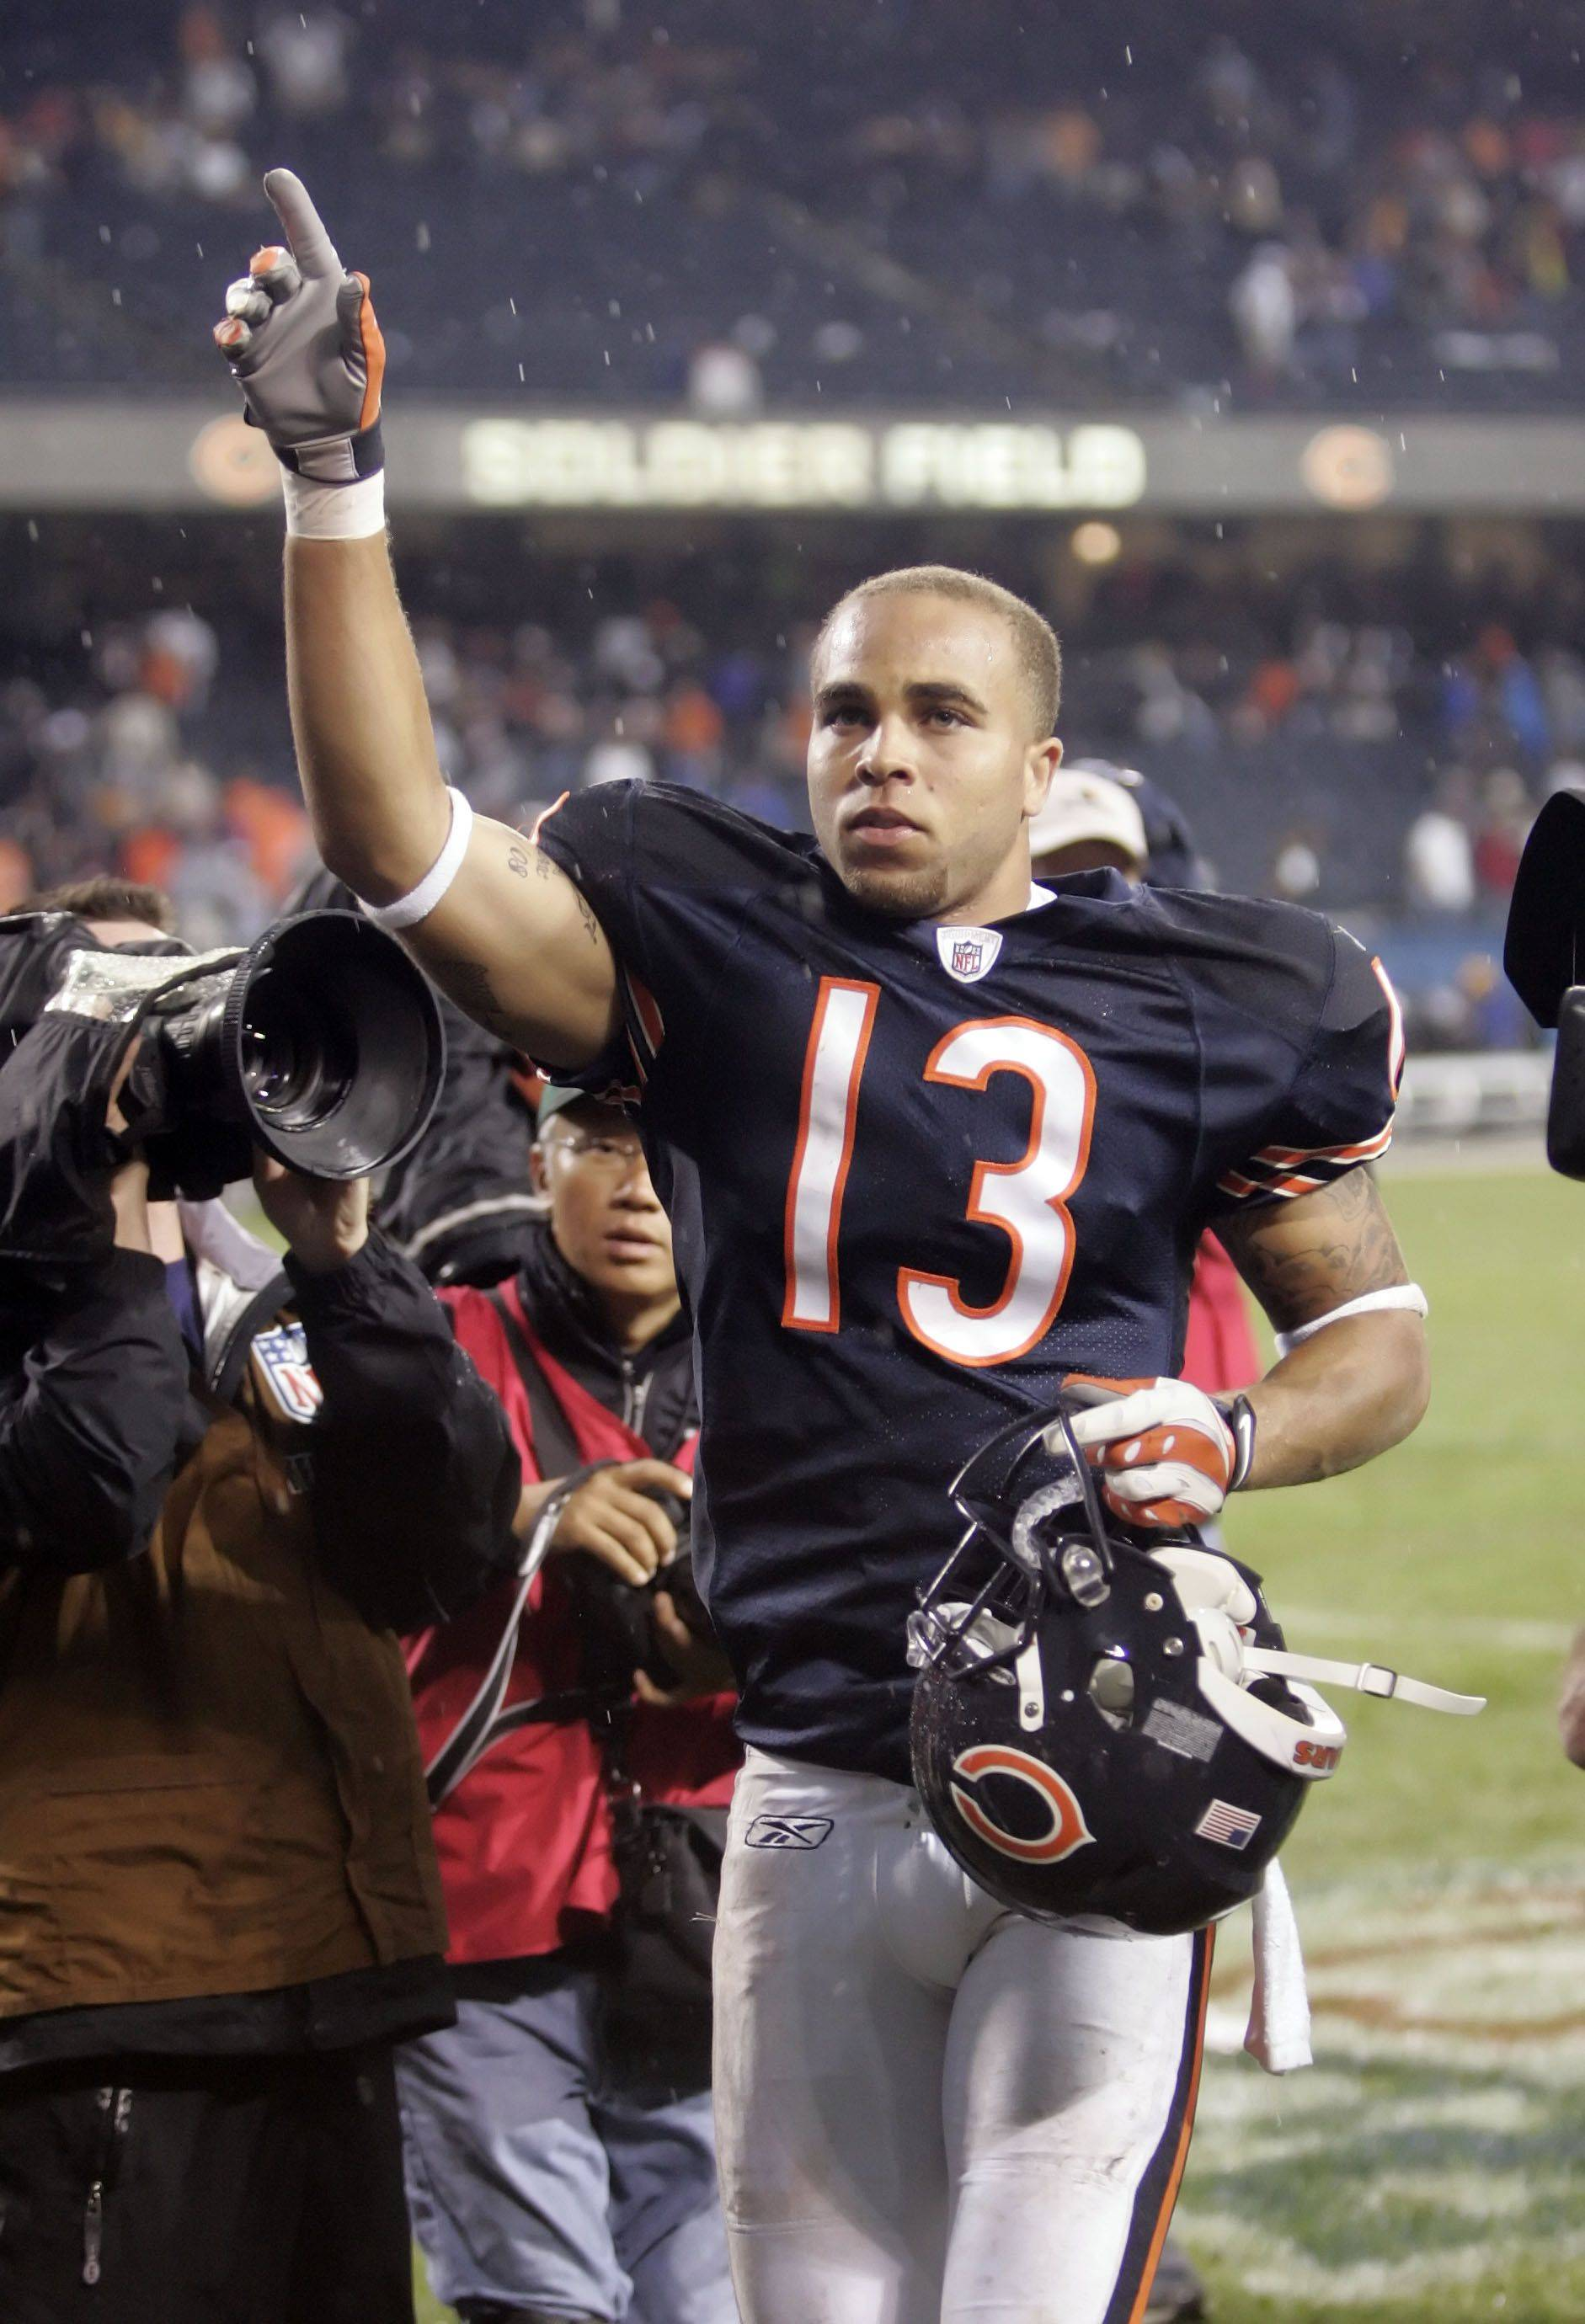 Johnny Knox leads the Bears with 672 receiving yards this season.